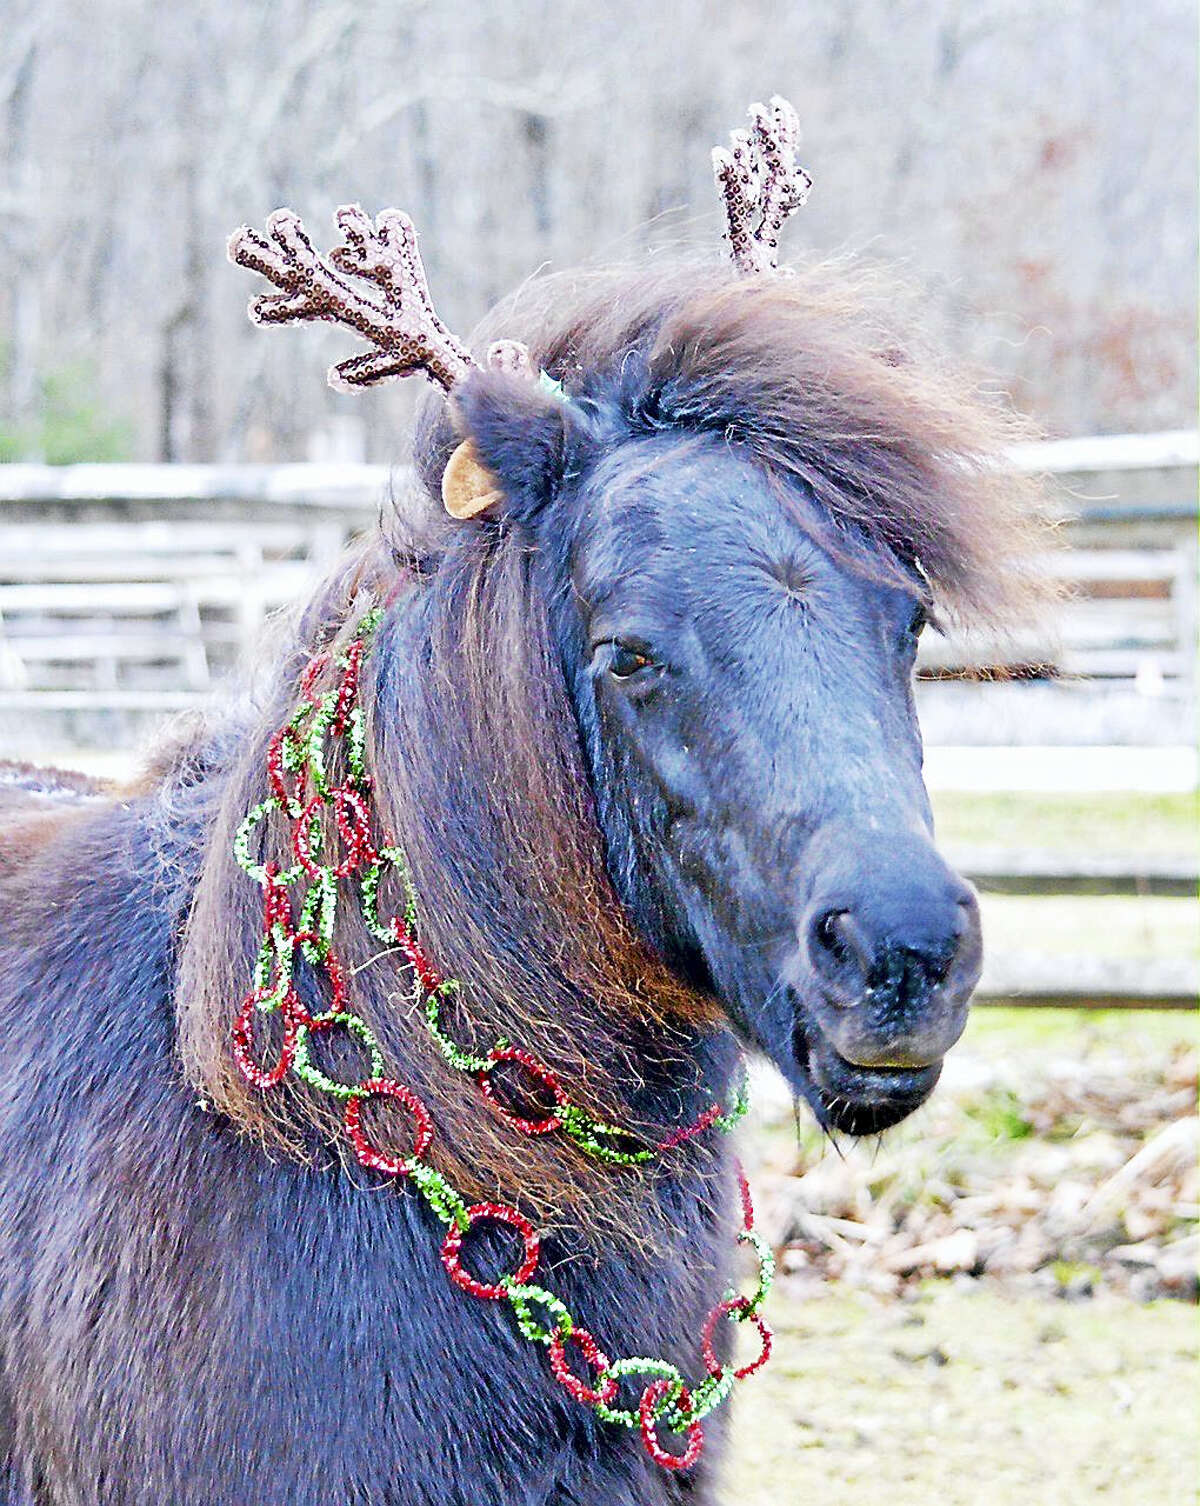 Contributed photo A little horse is dressed up for Christmas, in preparation for H.O.R.S.E. of Connecticut's Christmas open house on Saturday, Dec. 10.